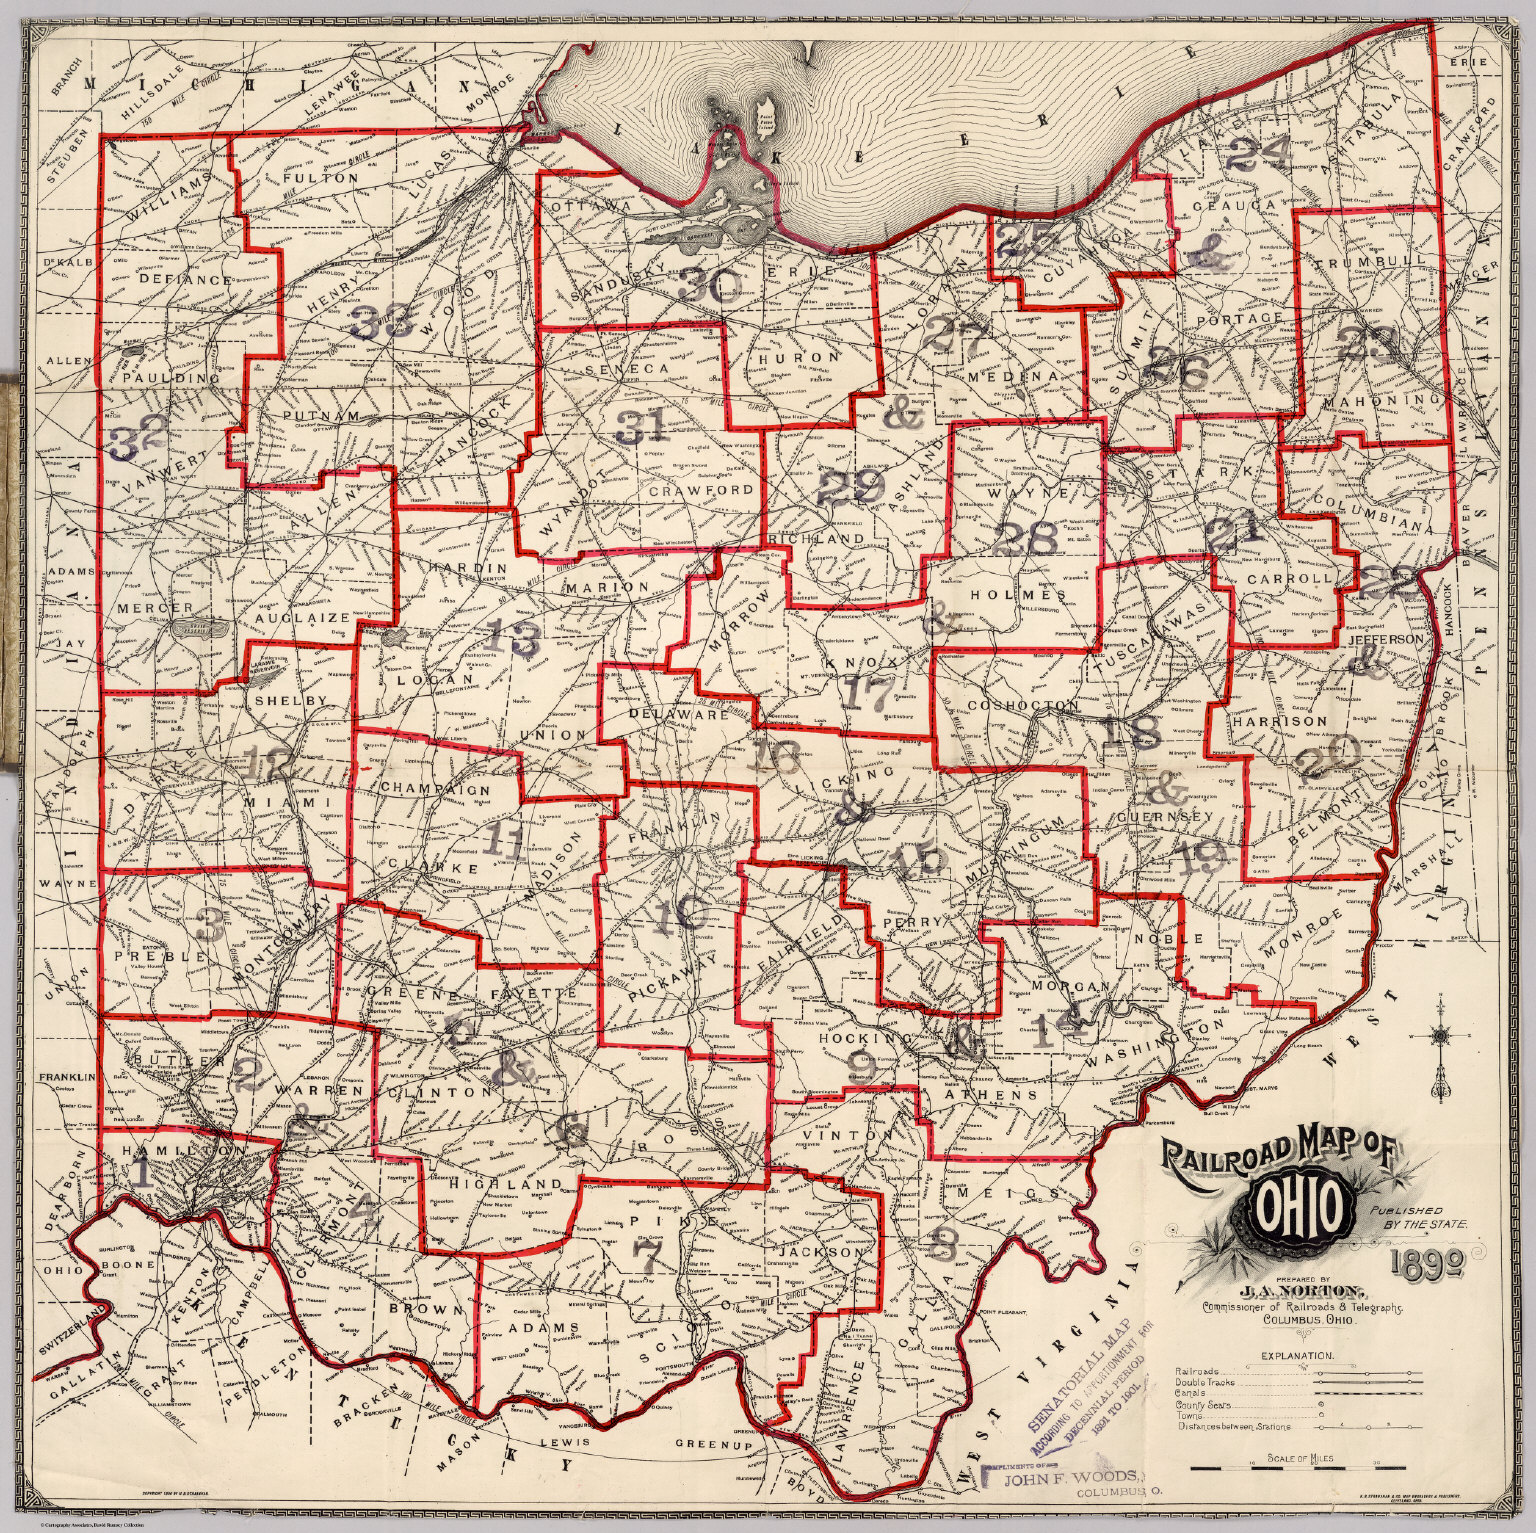 Railroad Map Of Ohio David Rumsey Historical Map Collection - Mapofohio